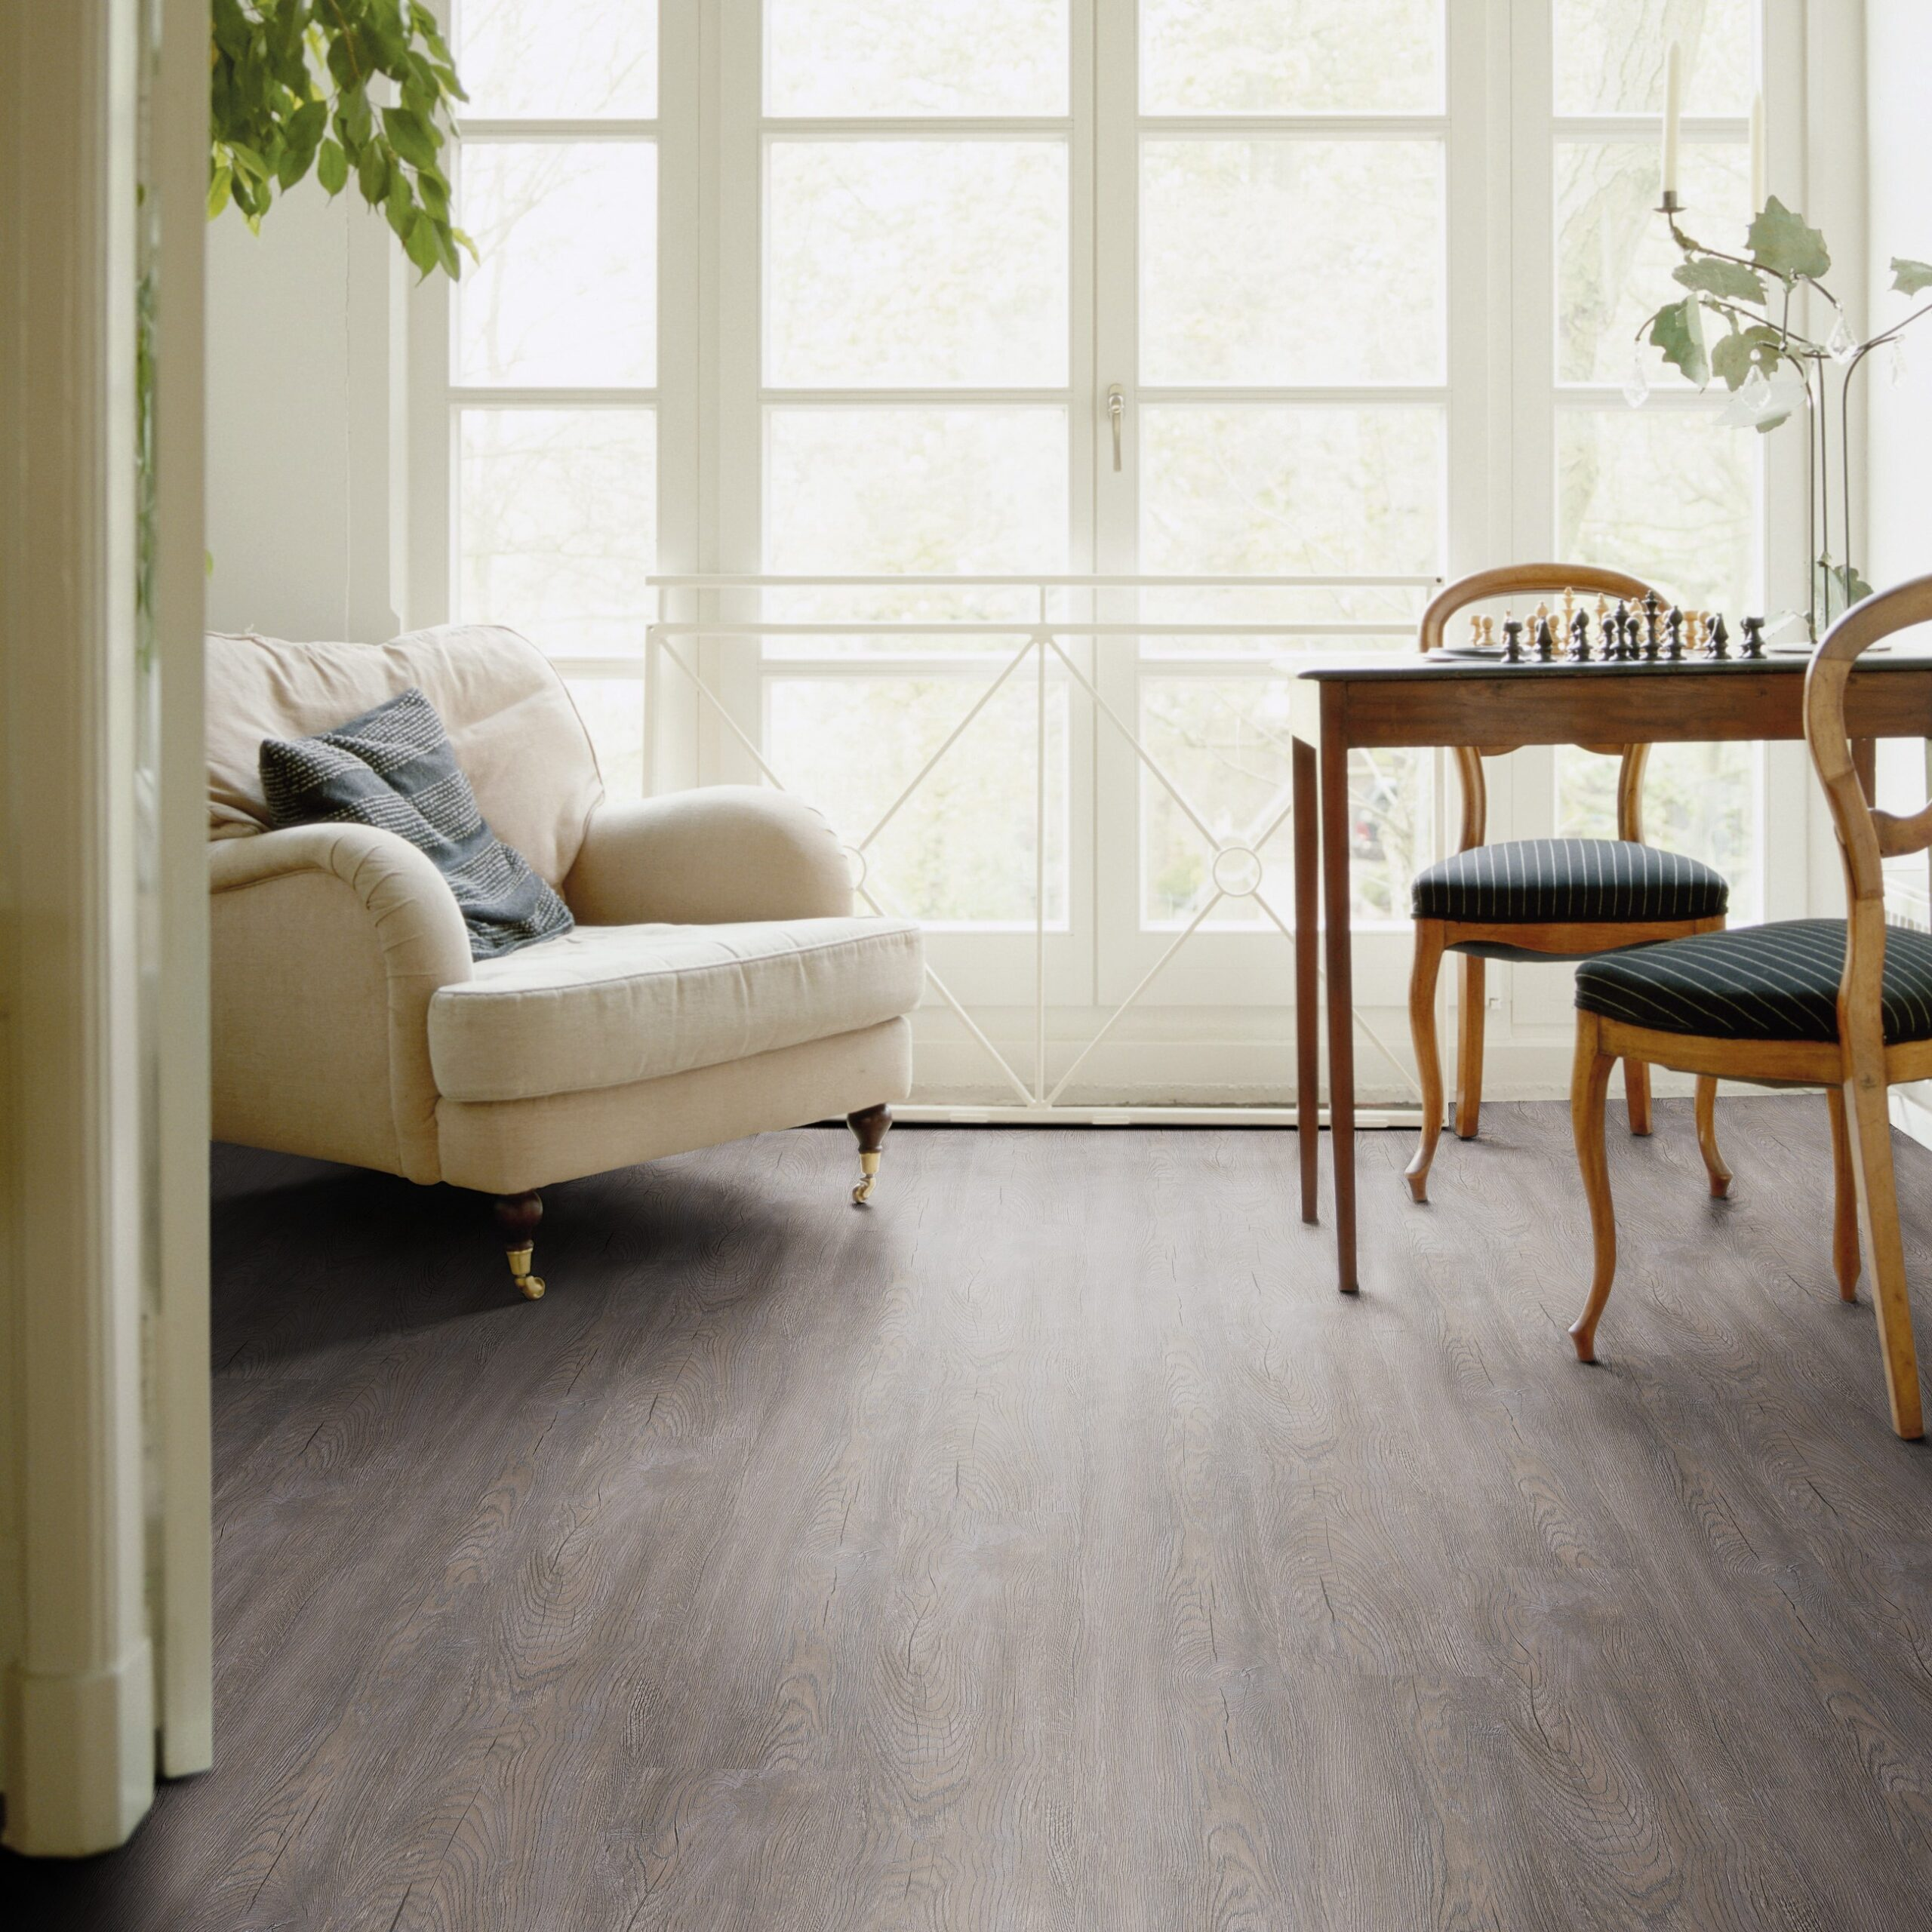 Luvanto Endure Pro LVT Vintage Grey Oak